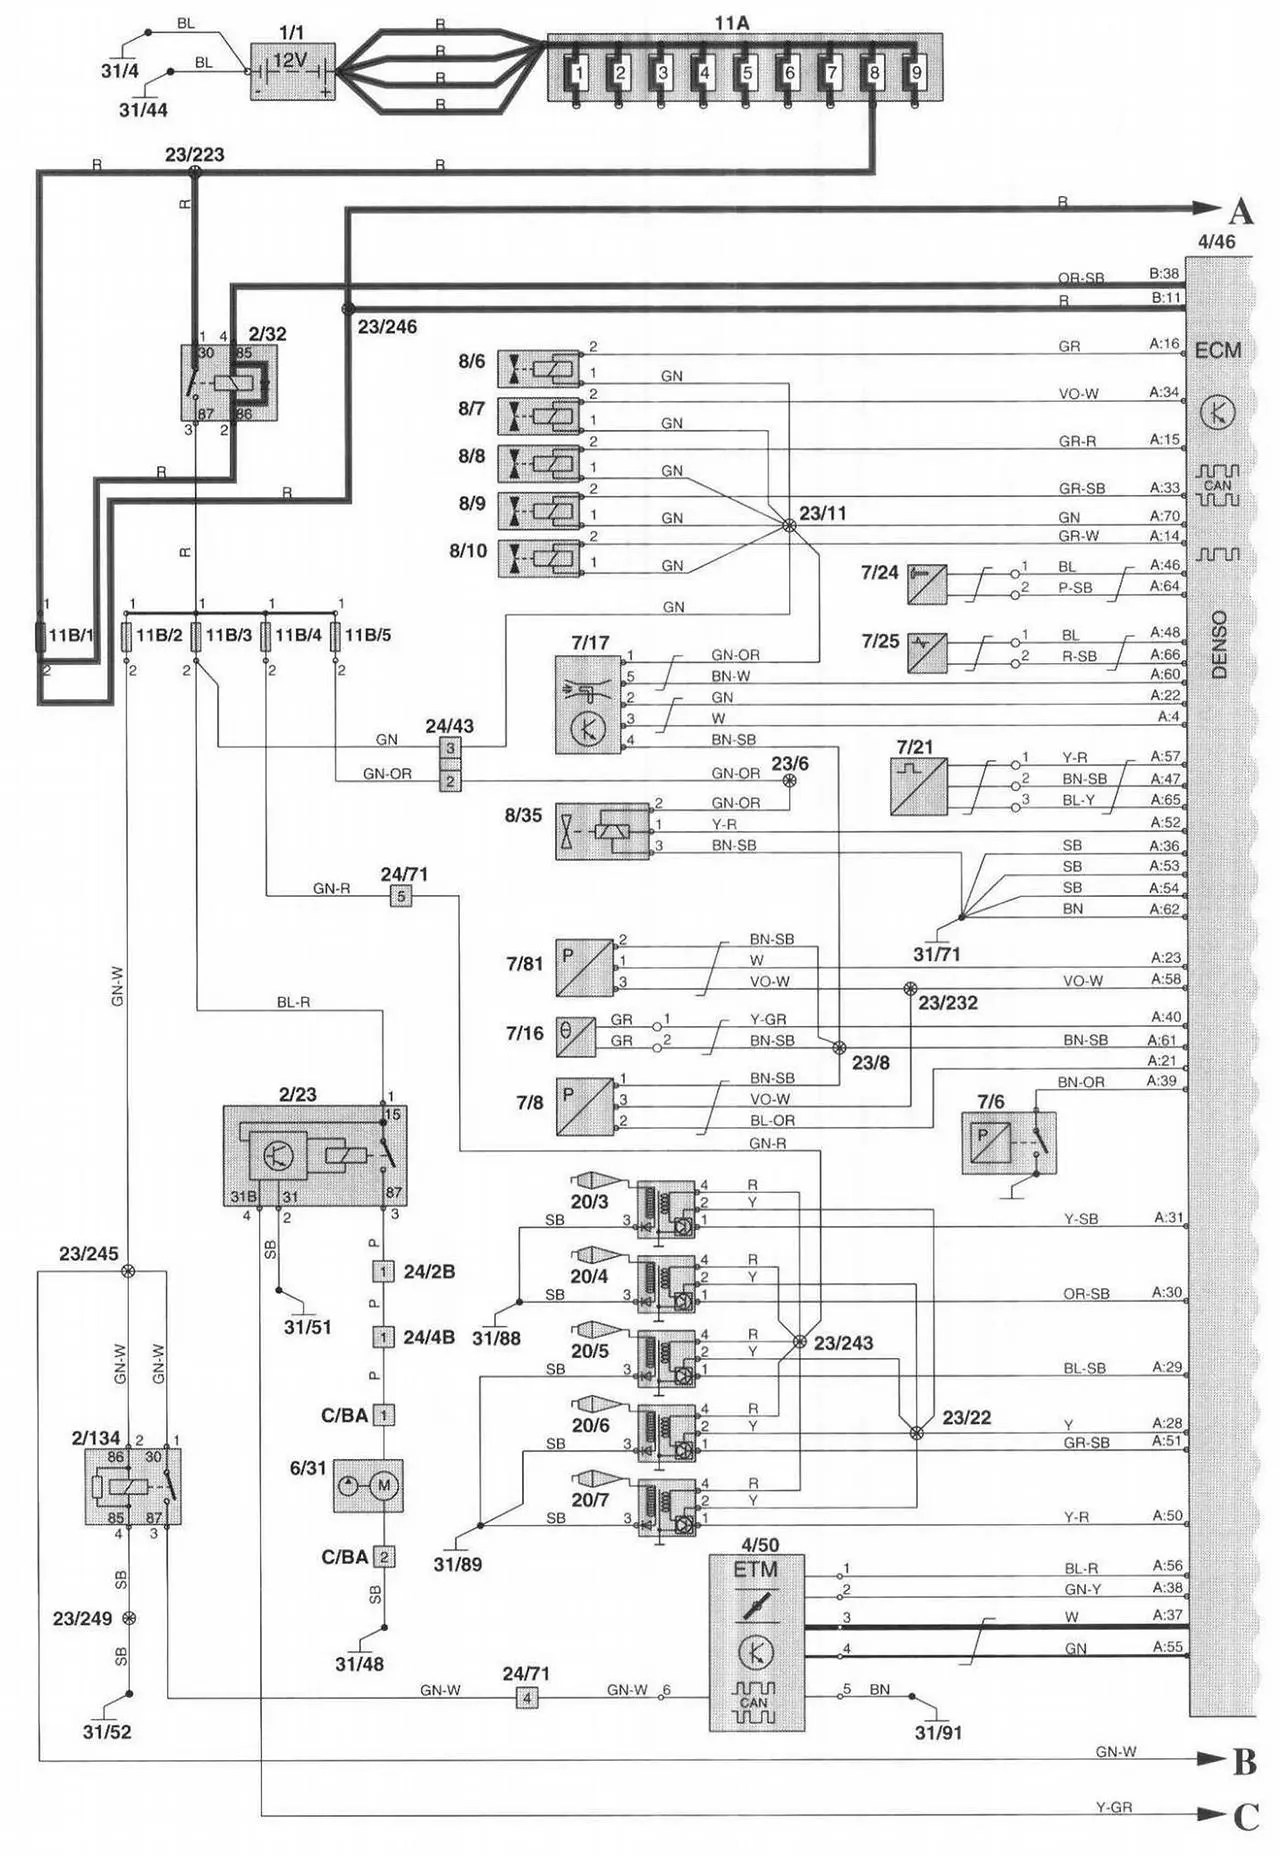 hight resolution of fuse box in volvo s40 2001 wiring diagram centre 2005 volvo xc90 power seat fuses on 2000 volvo s40 headlight wiring